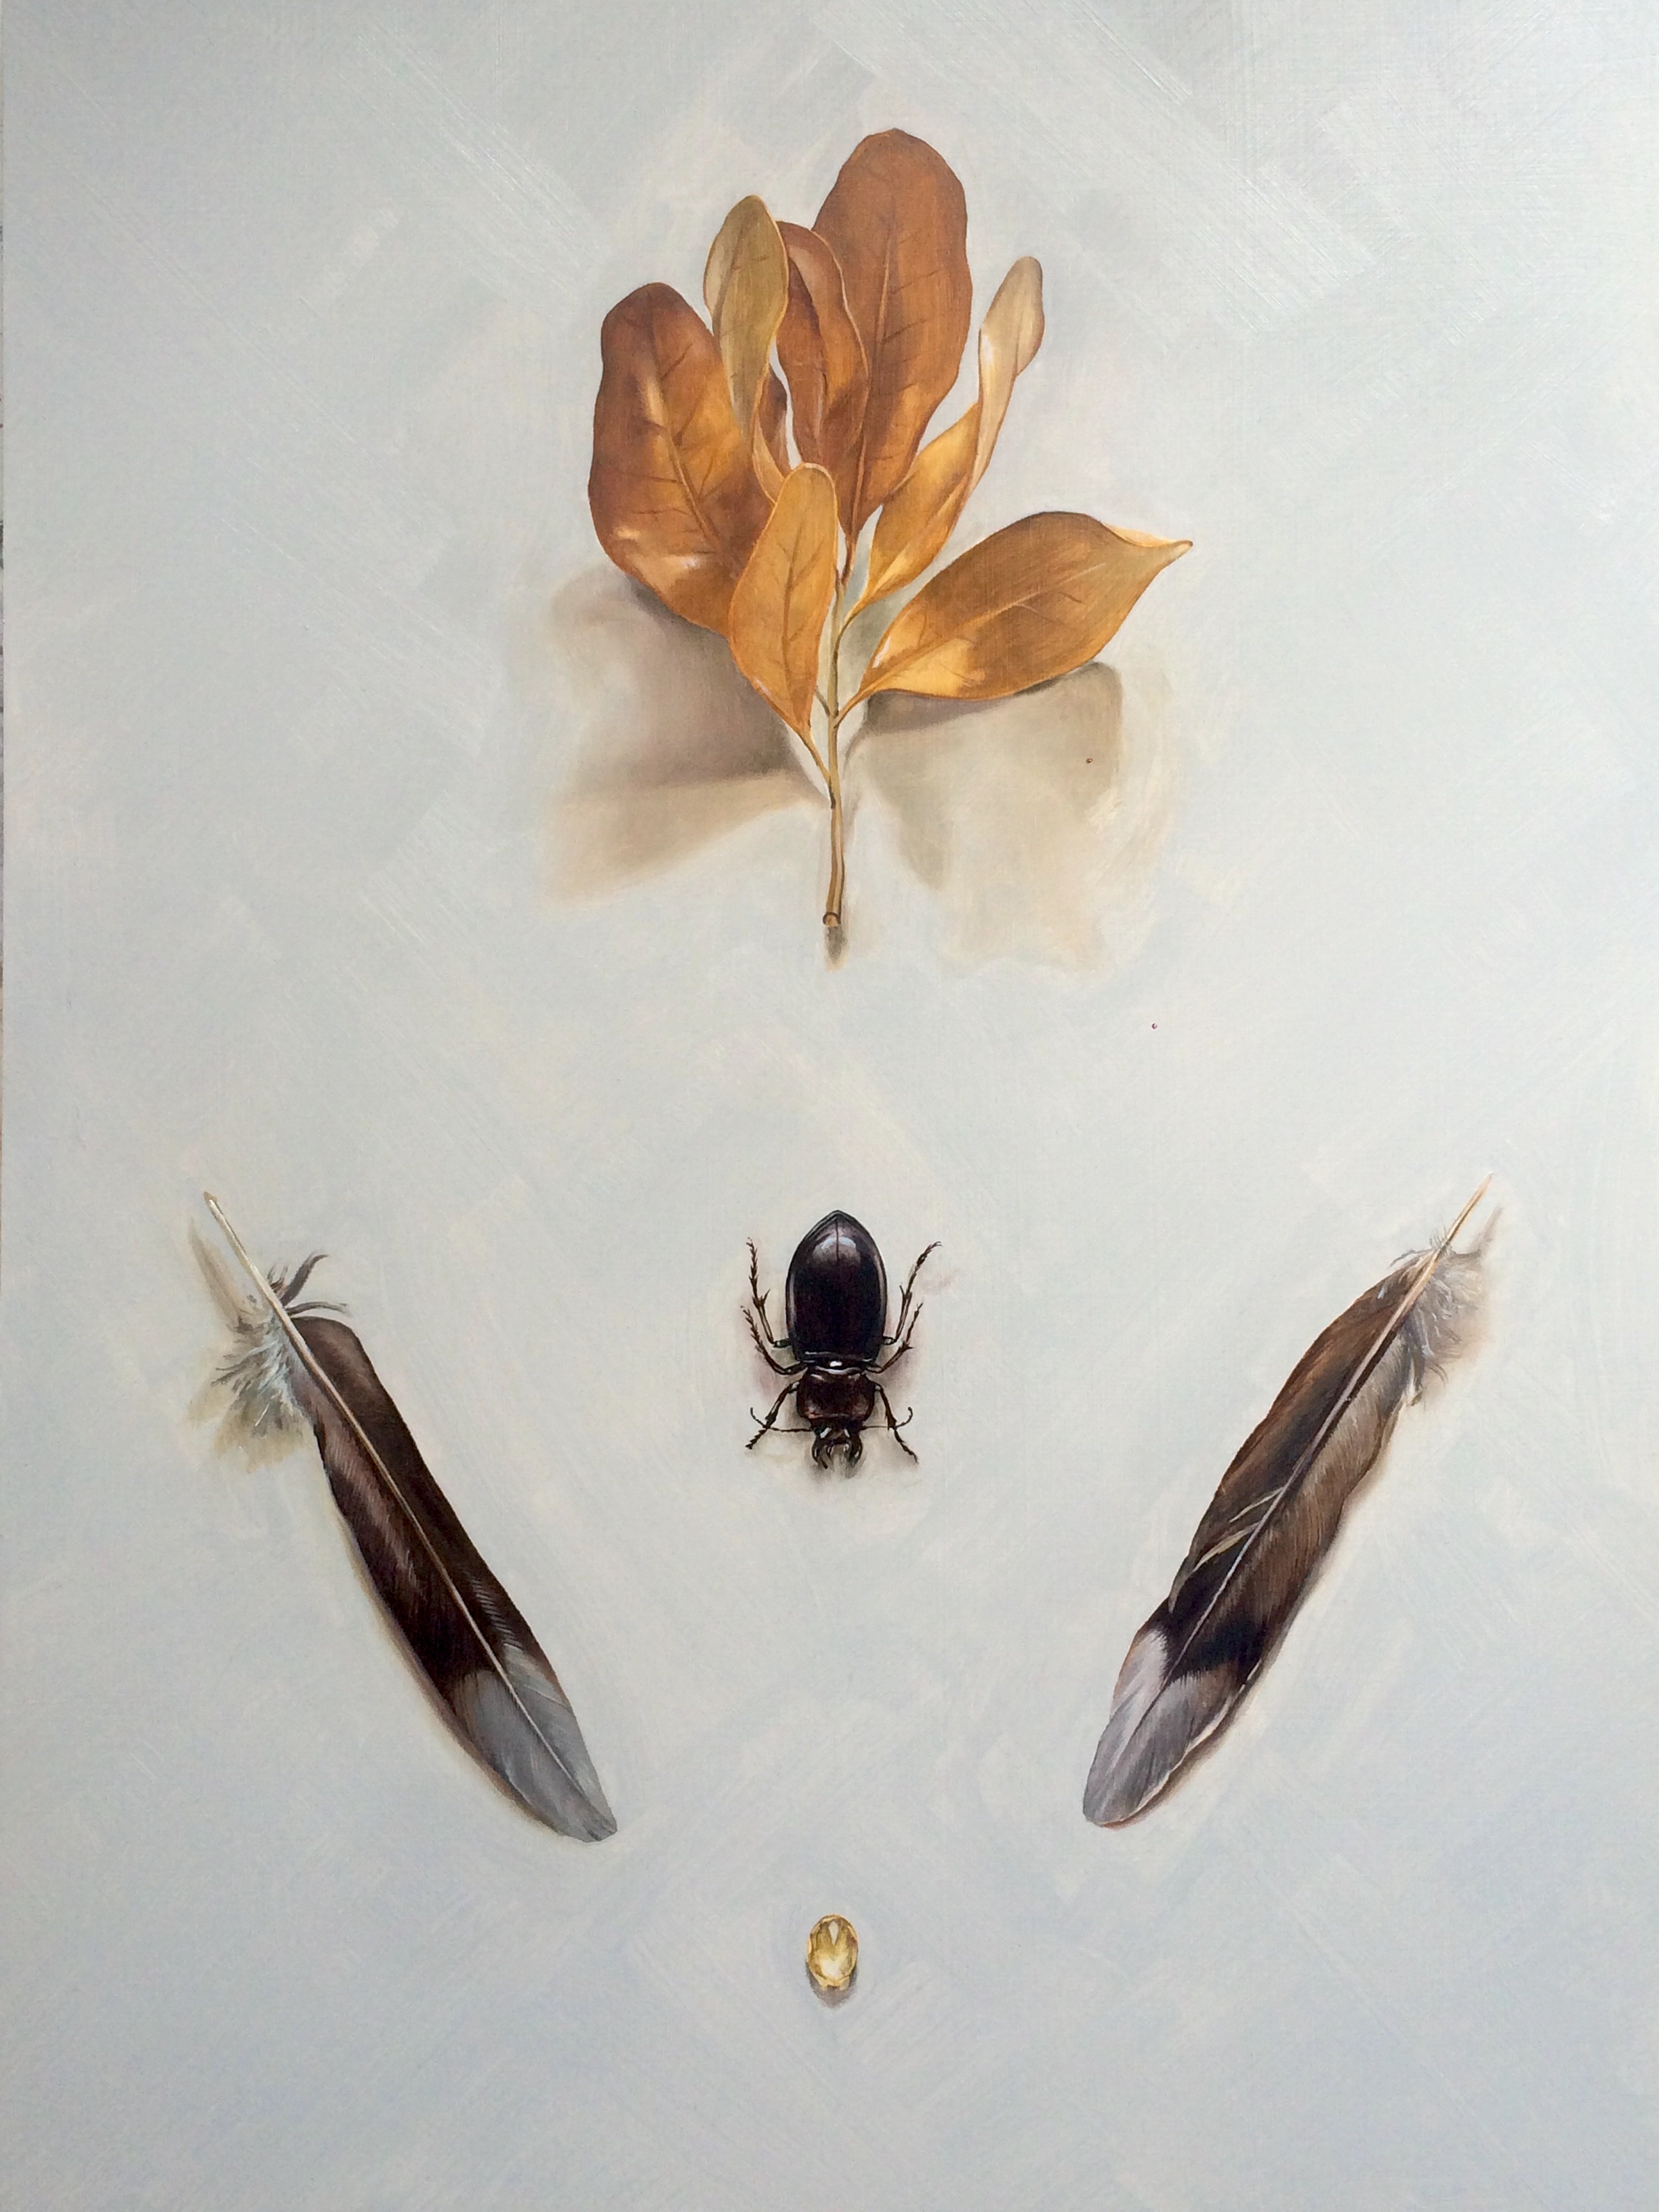 Beetle and Leaves